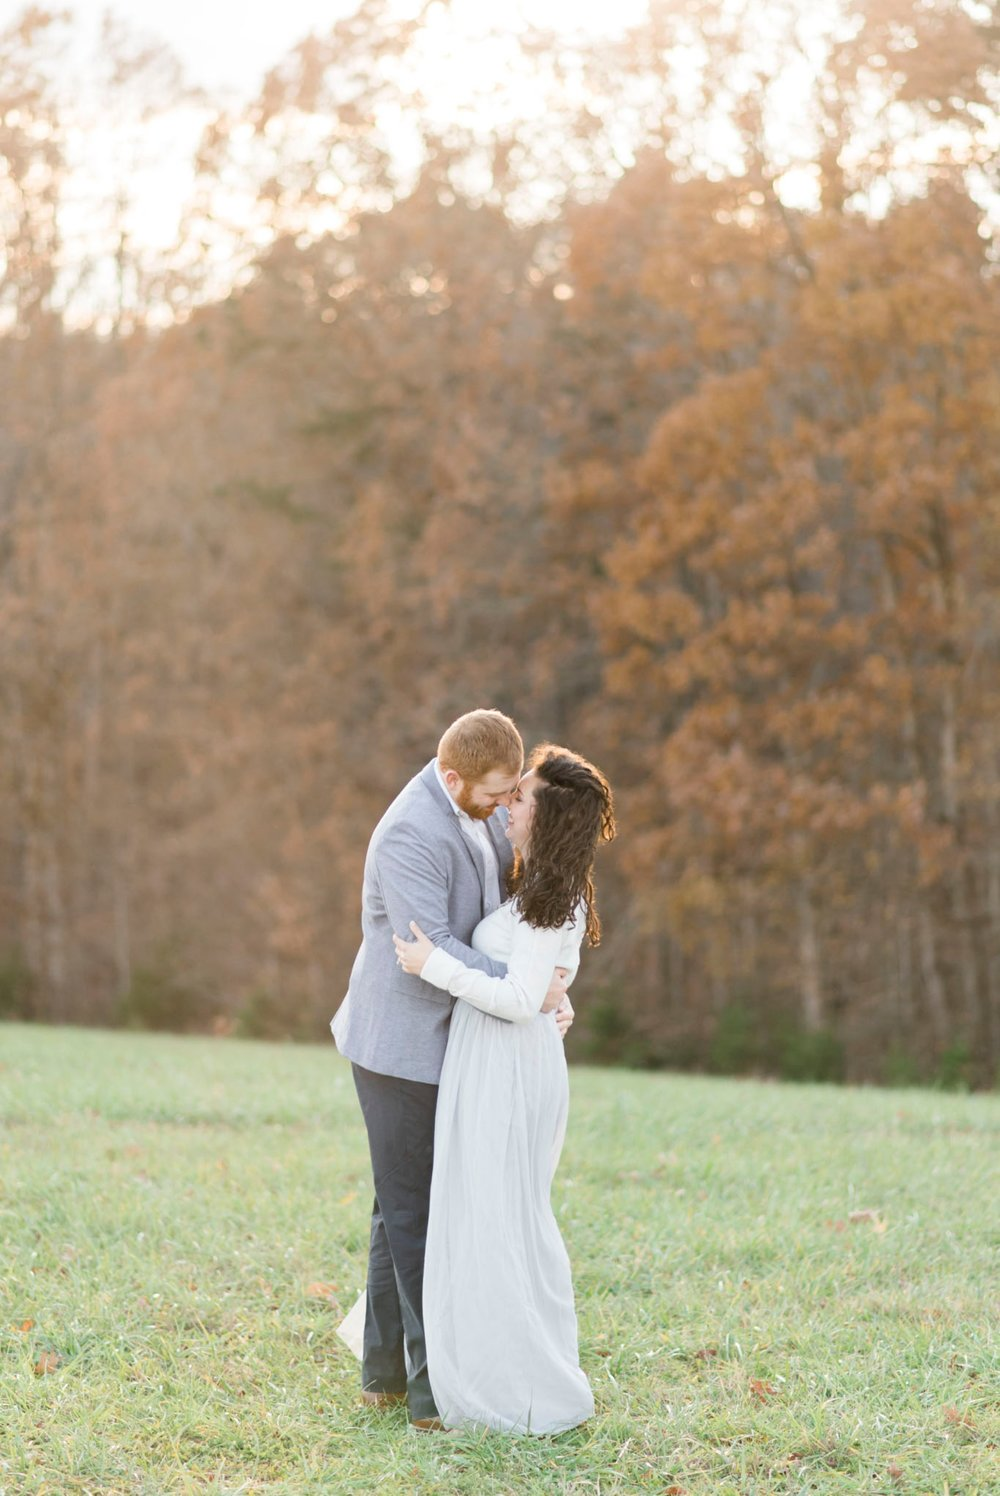 SorellaFarms_EngagementSession_VirginiaweddingPhotographer 31.jpg